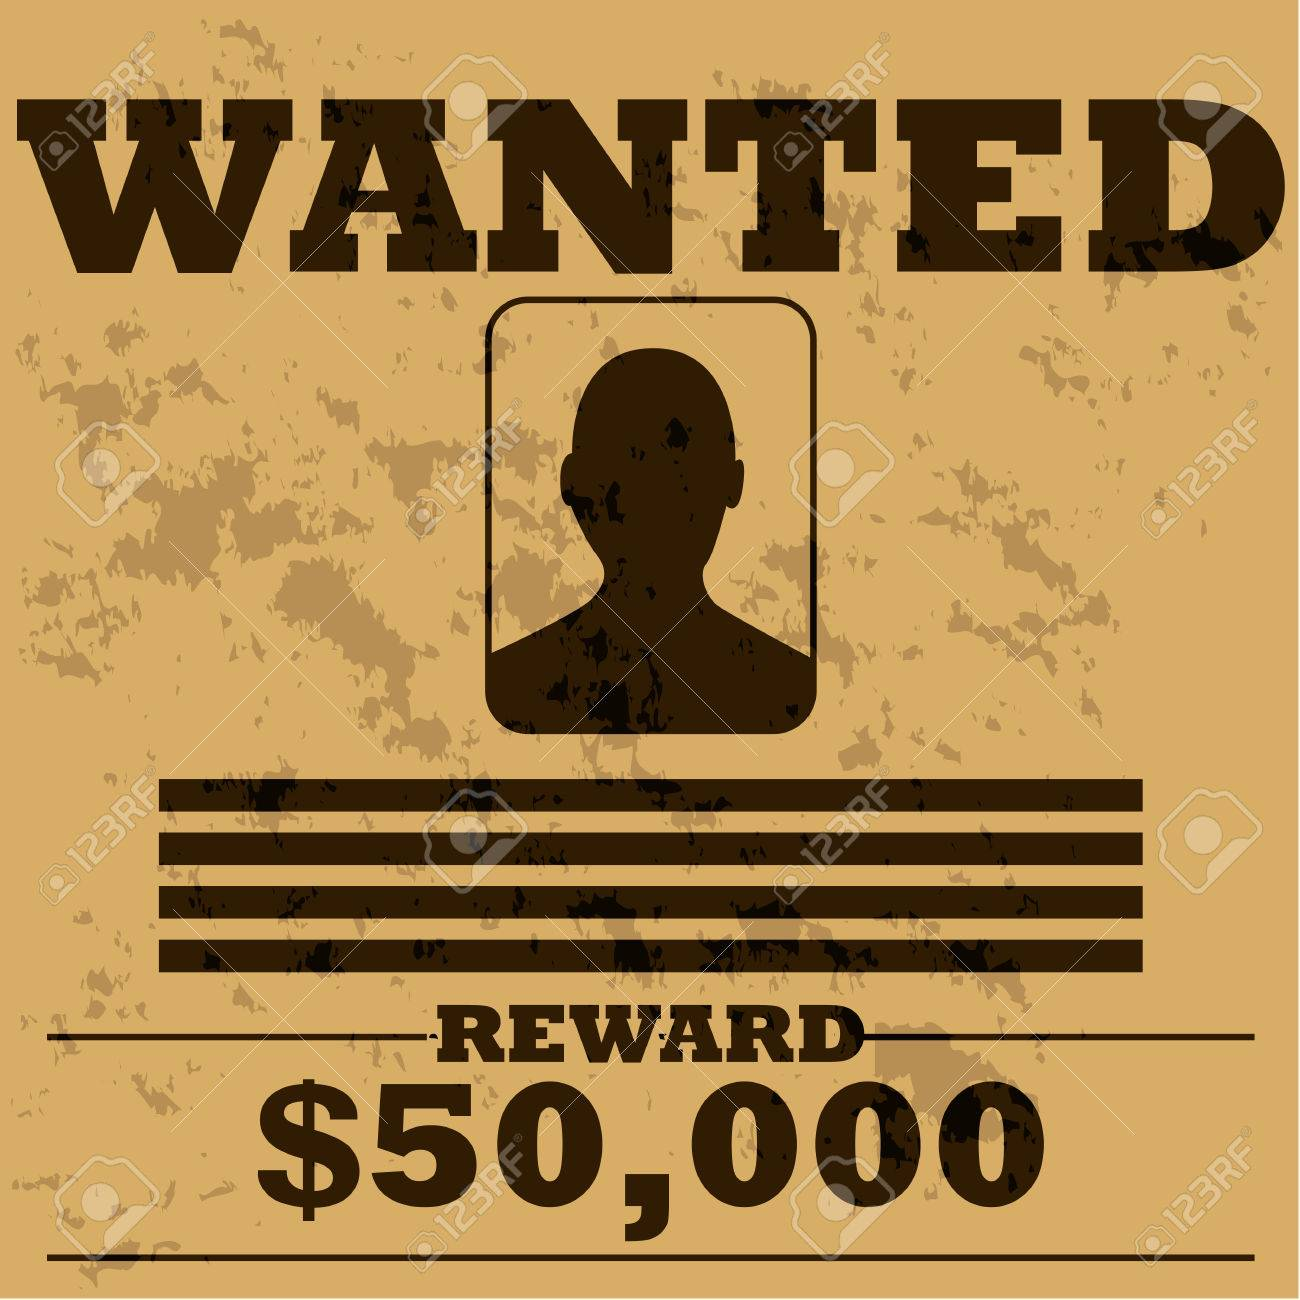 Doc450633 Wanted Template Poster Wanted Poster Template FBI – Wanted Template Poster